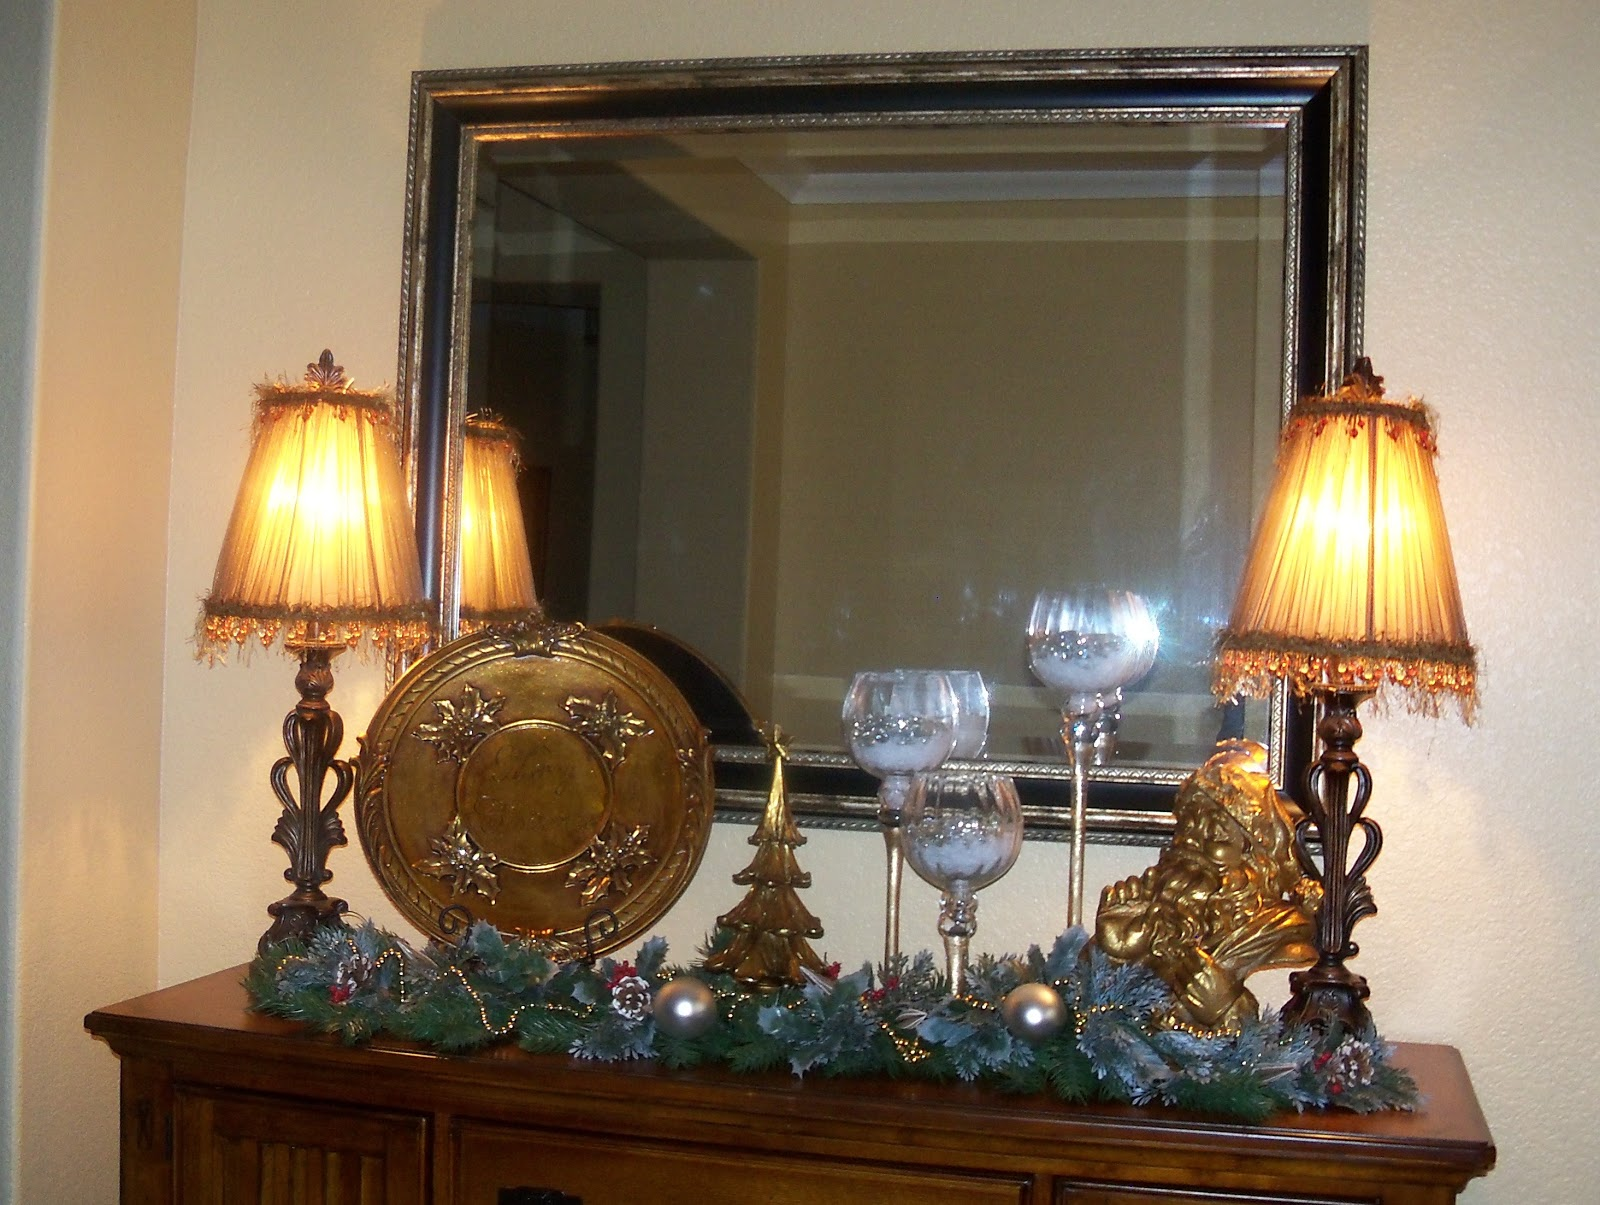 Southern seazons dining room buffet decorated for christmas - How to decorate my dining room ...